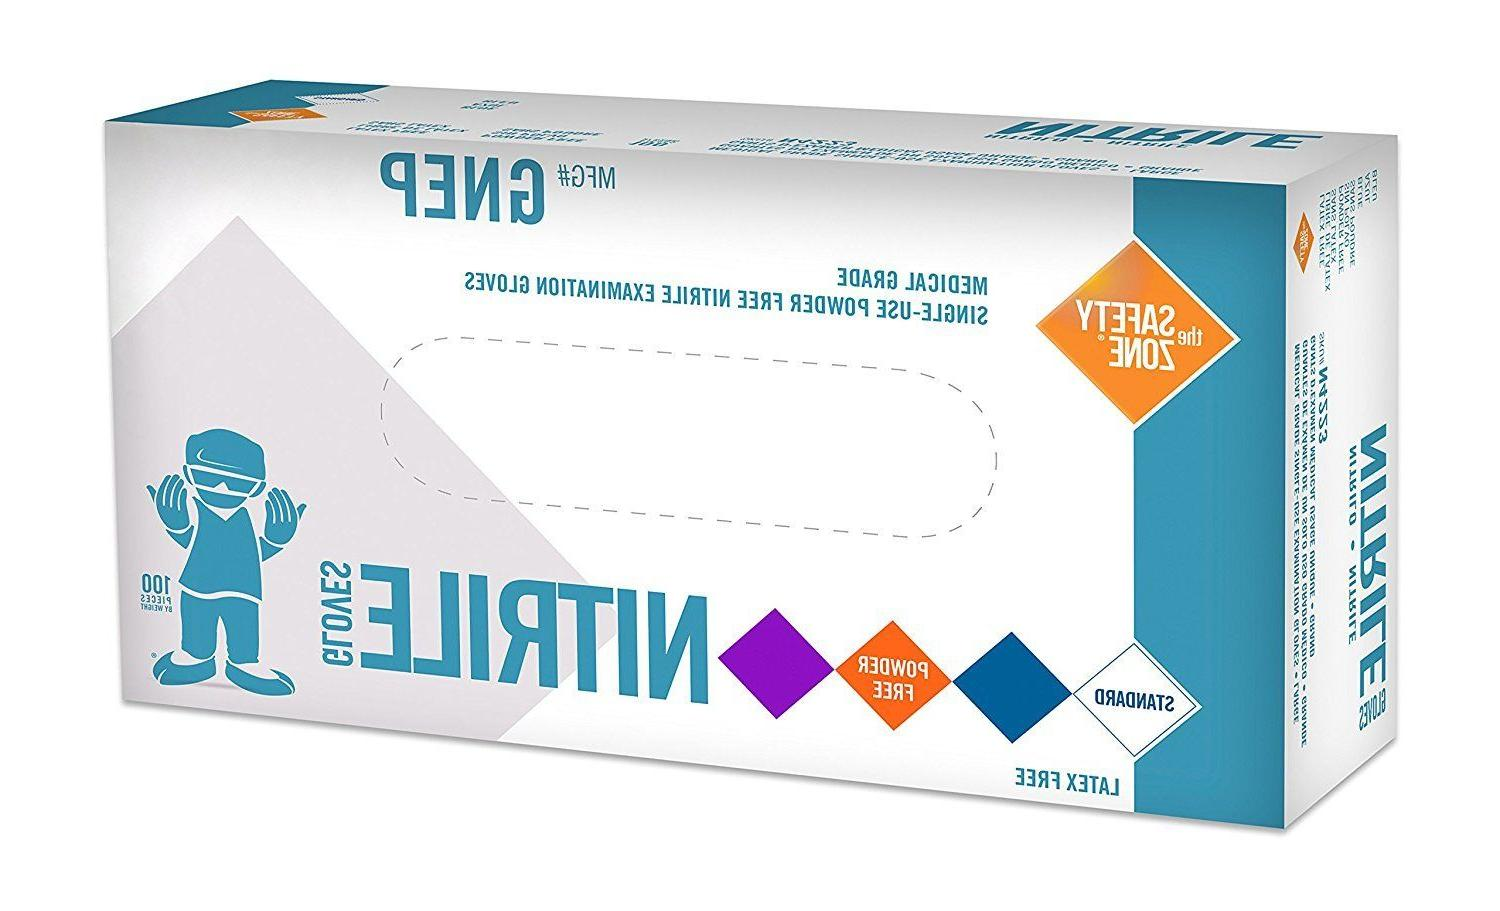 100 nitrile disposable gloves by powder free